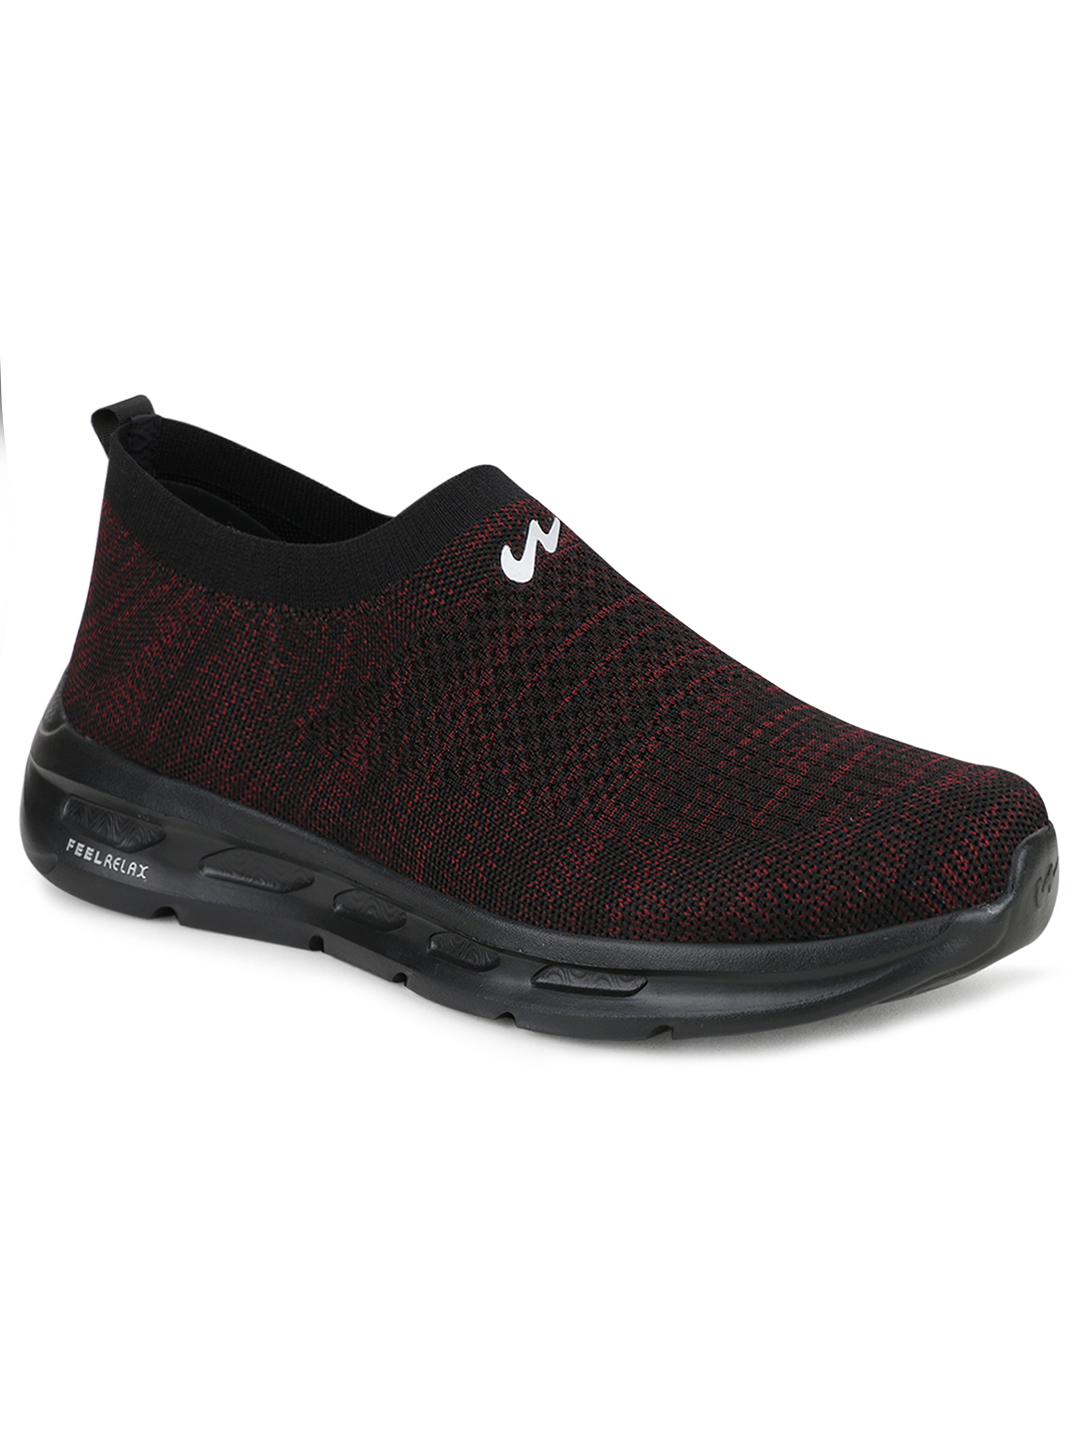 Campus Shoes   Red King Plus Casual Slip-ons